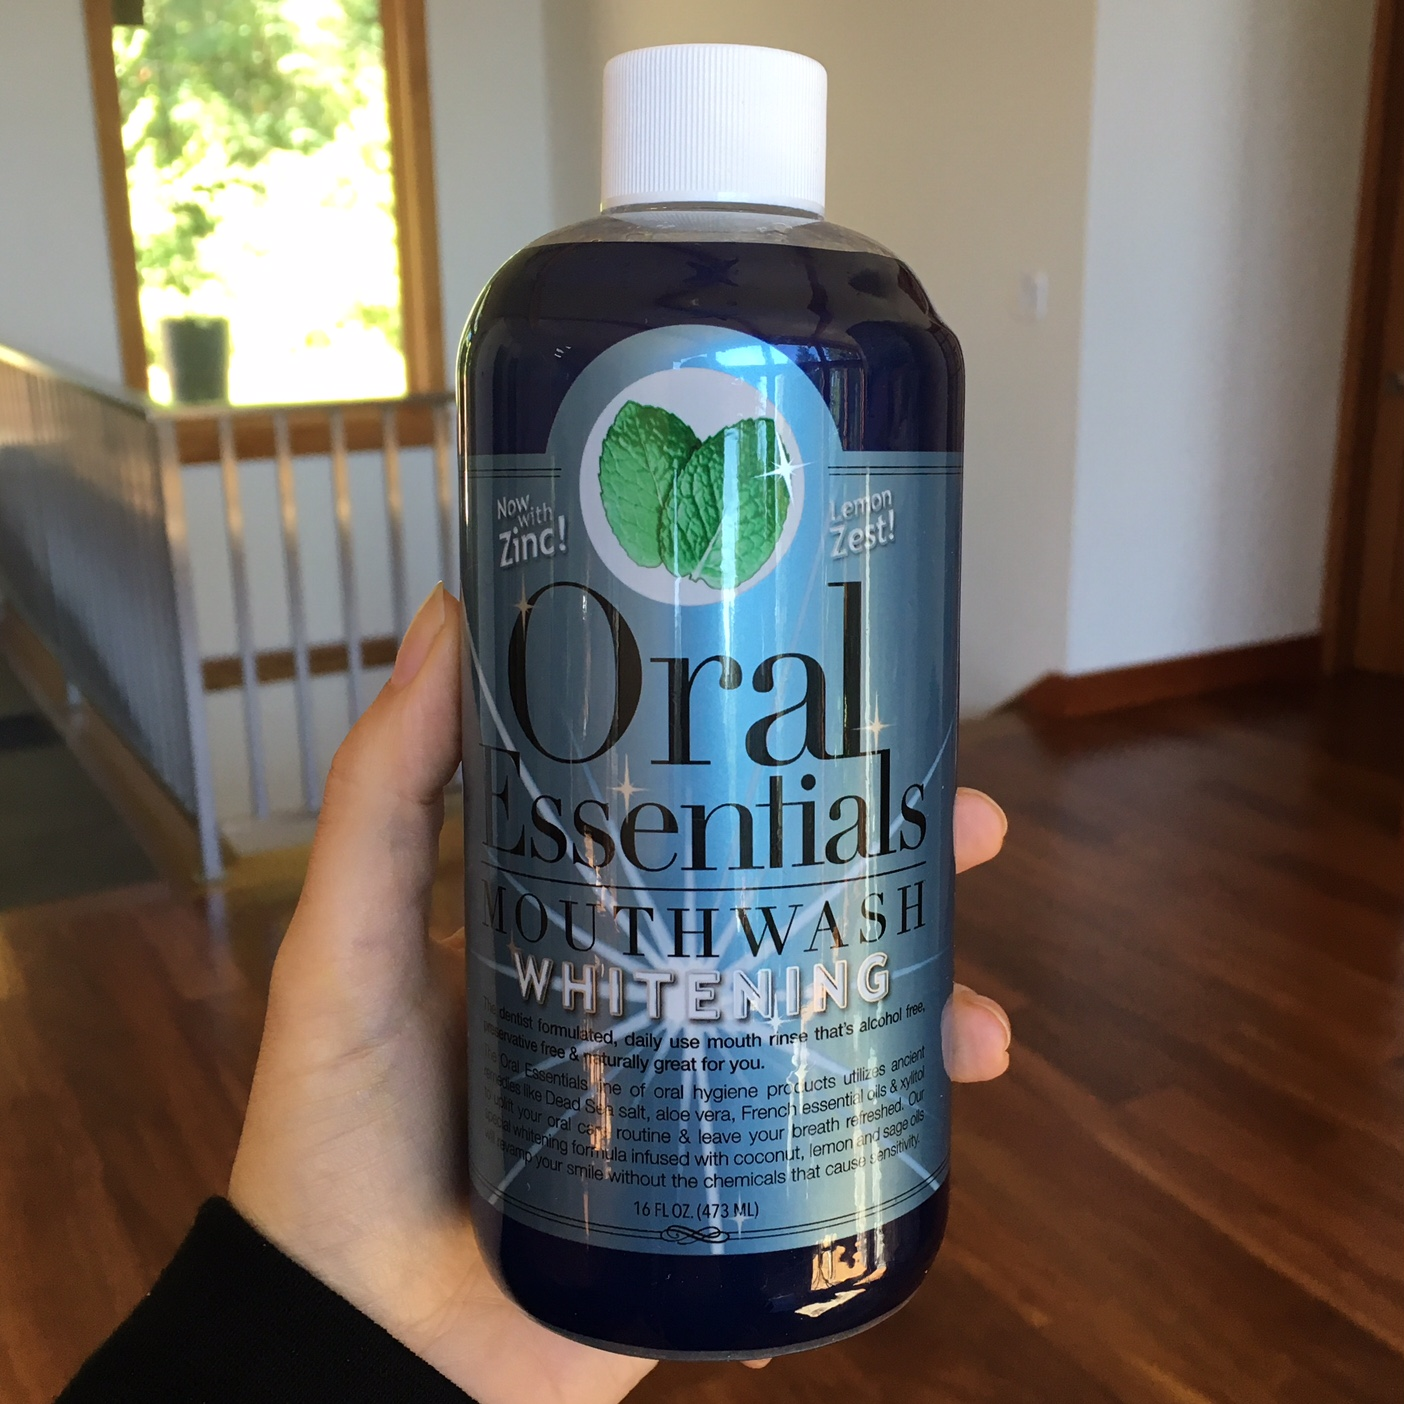 teeth-whitening-mouthwash-for-sensitive-teeth